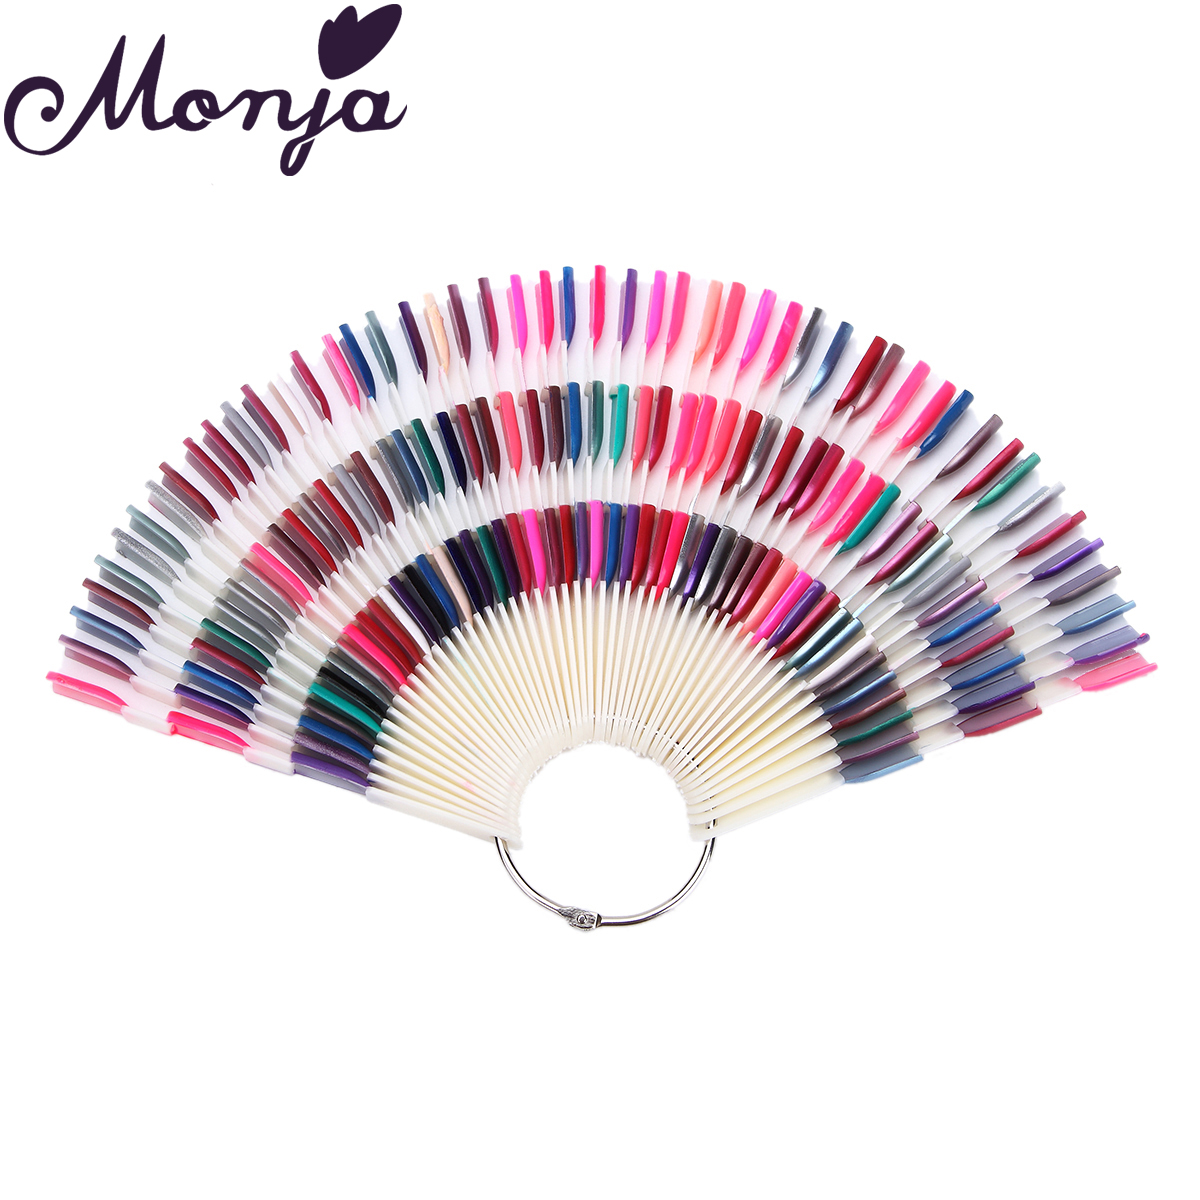 Monja 150pcs Nail Art Fan Shape Display Natural Chart Gel Polish Coloring Sample Practice Training Nails With Removable Ring